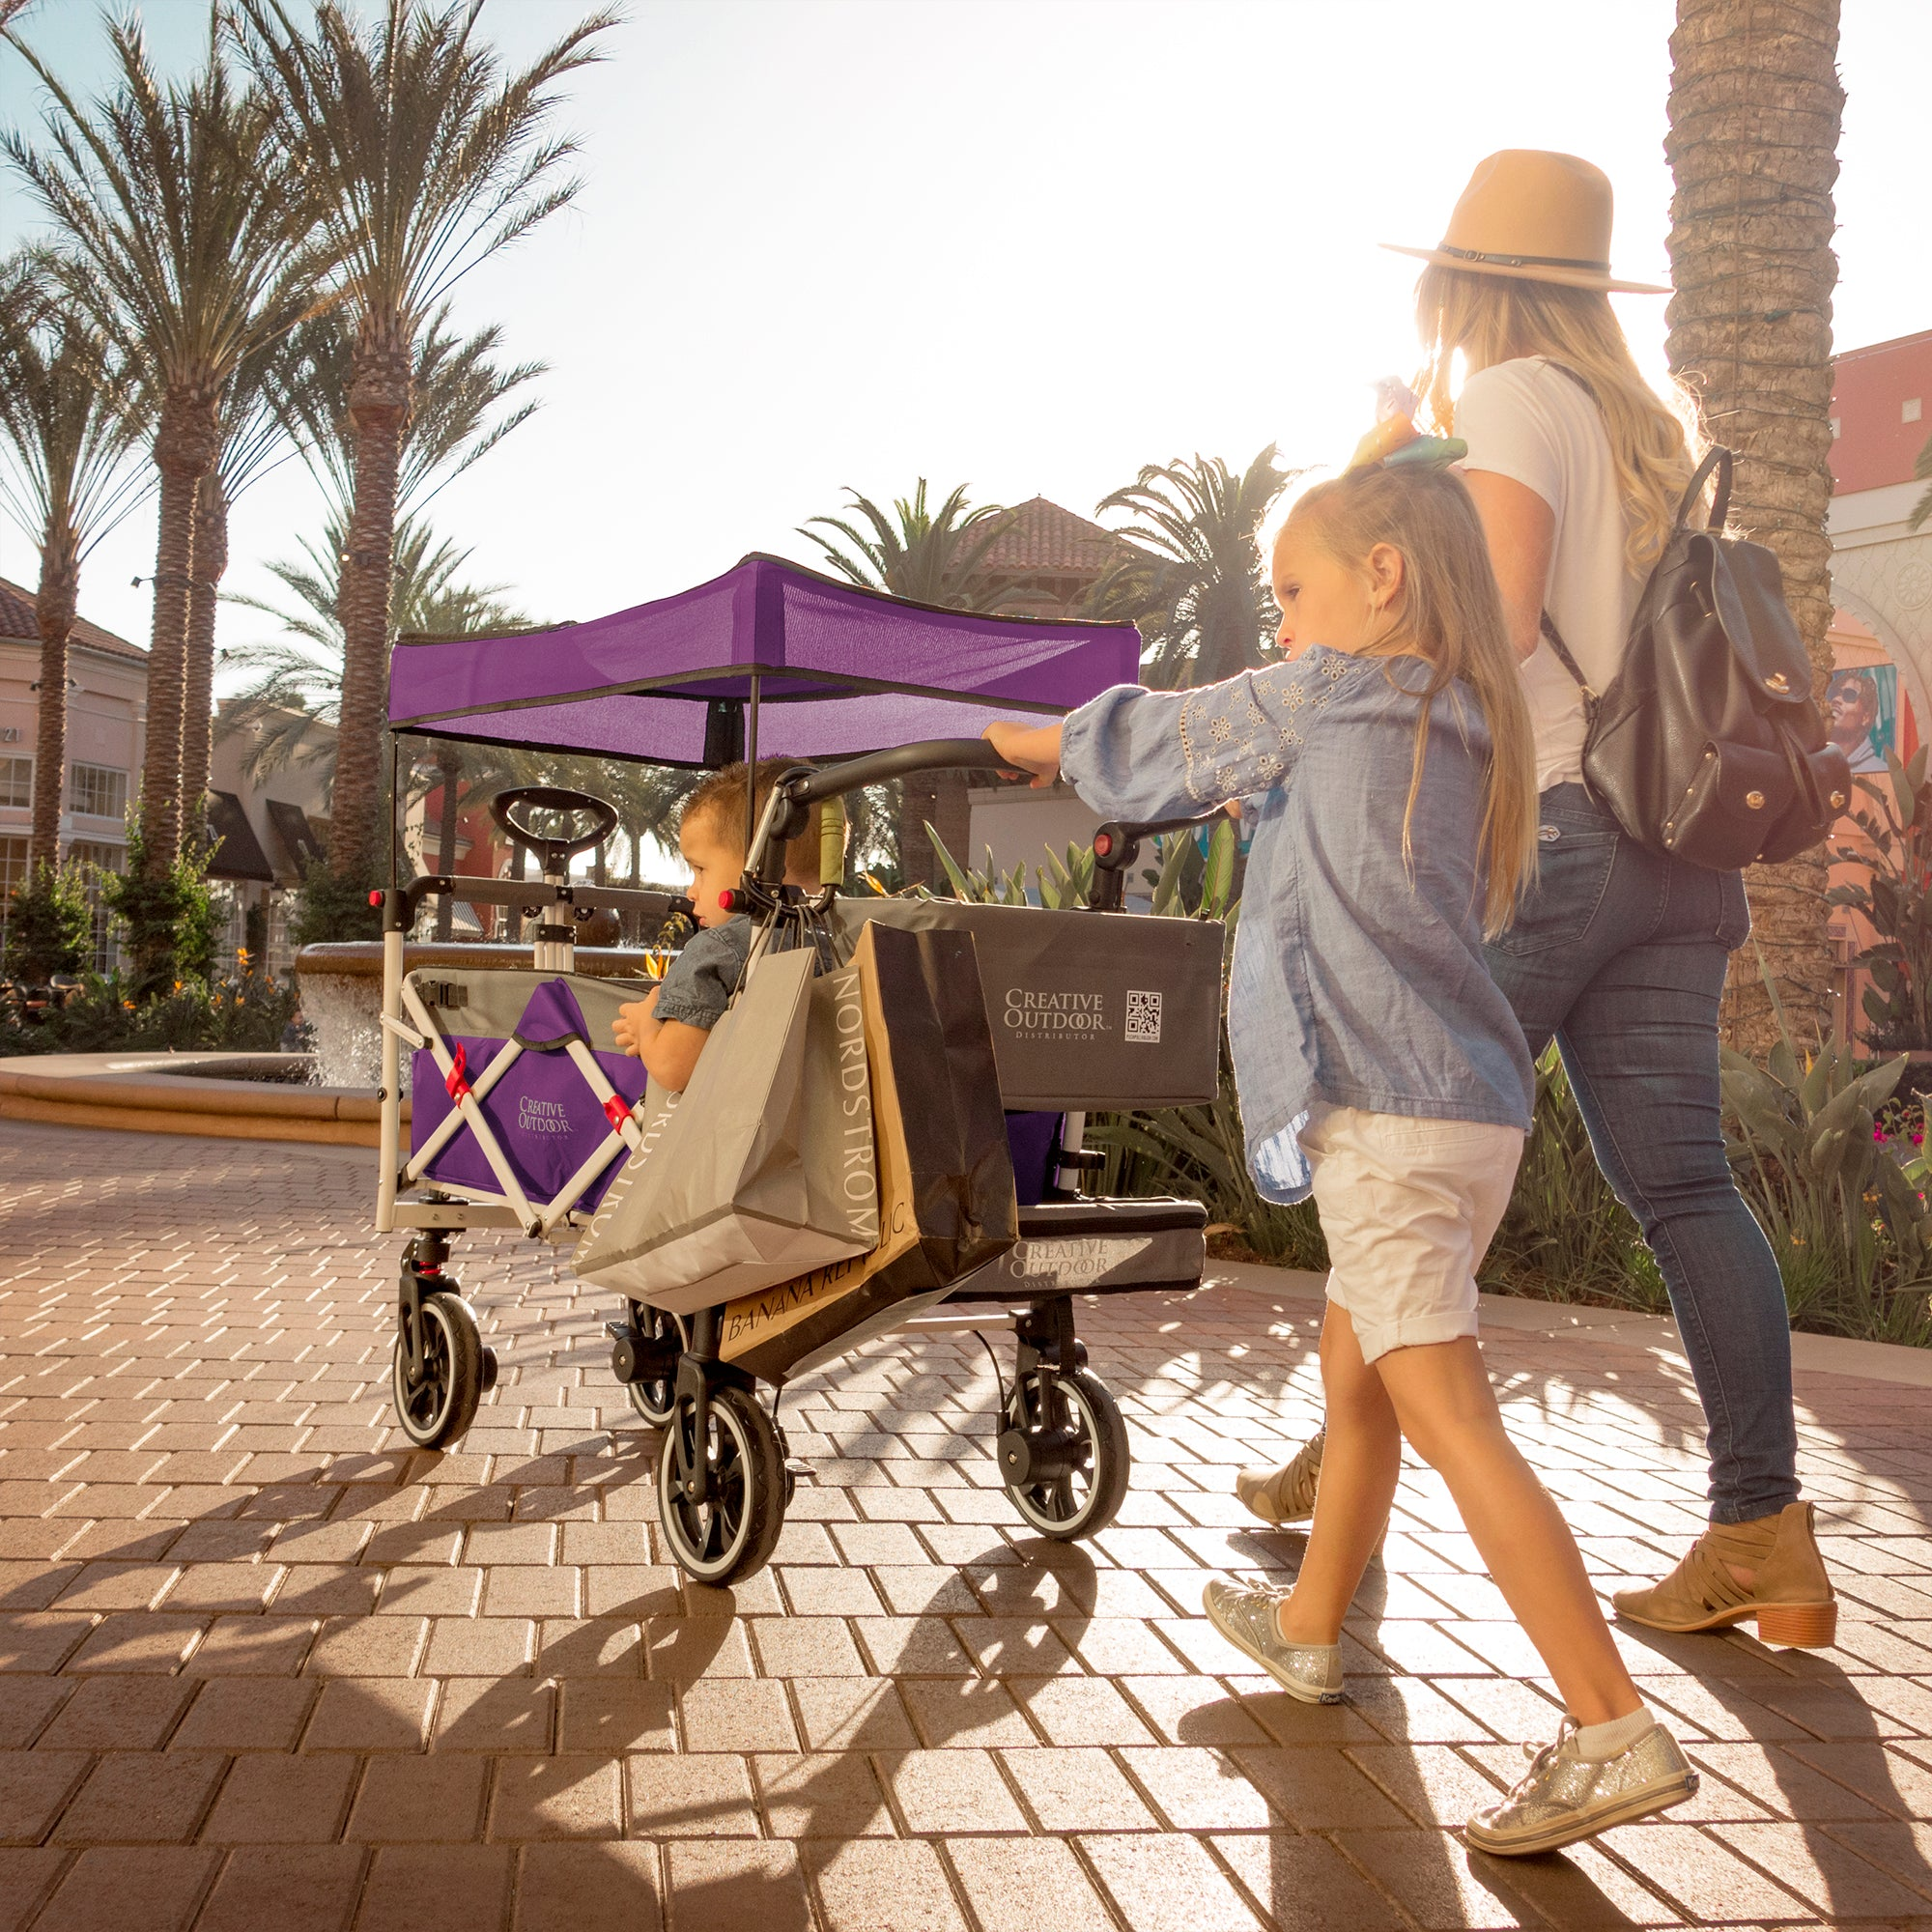 Push Pull TITANIUM SERIES PLUS Folding Wagon Stroller with Canopy | Purple